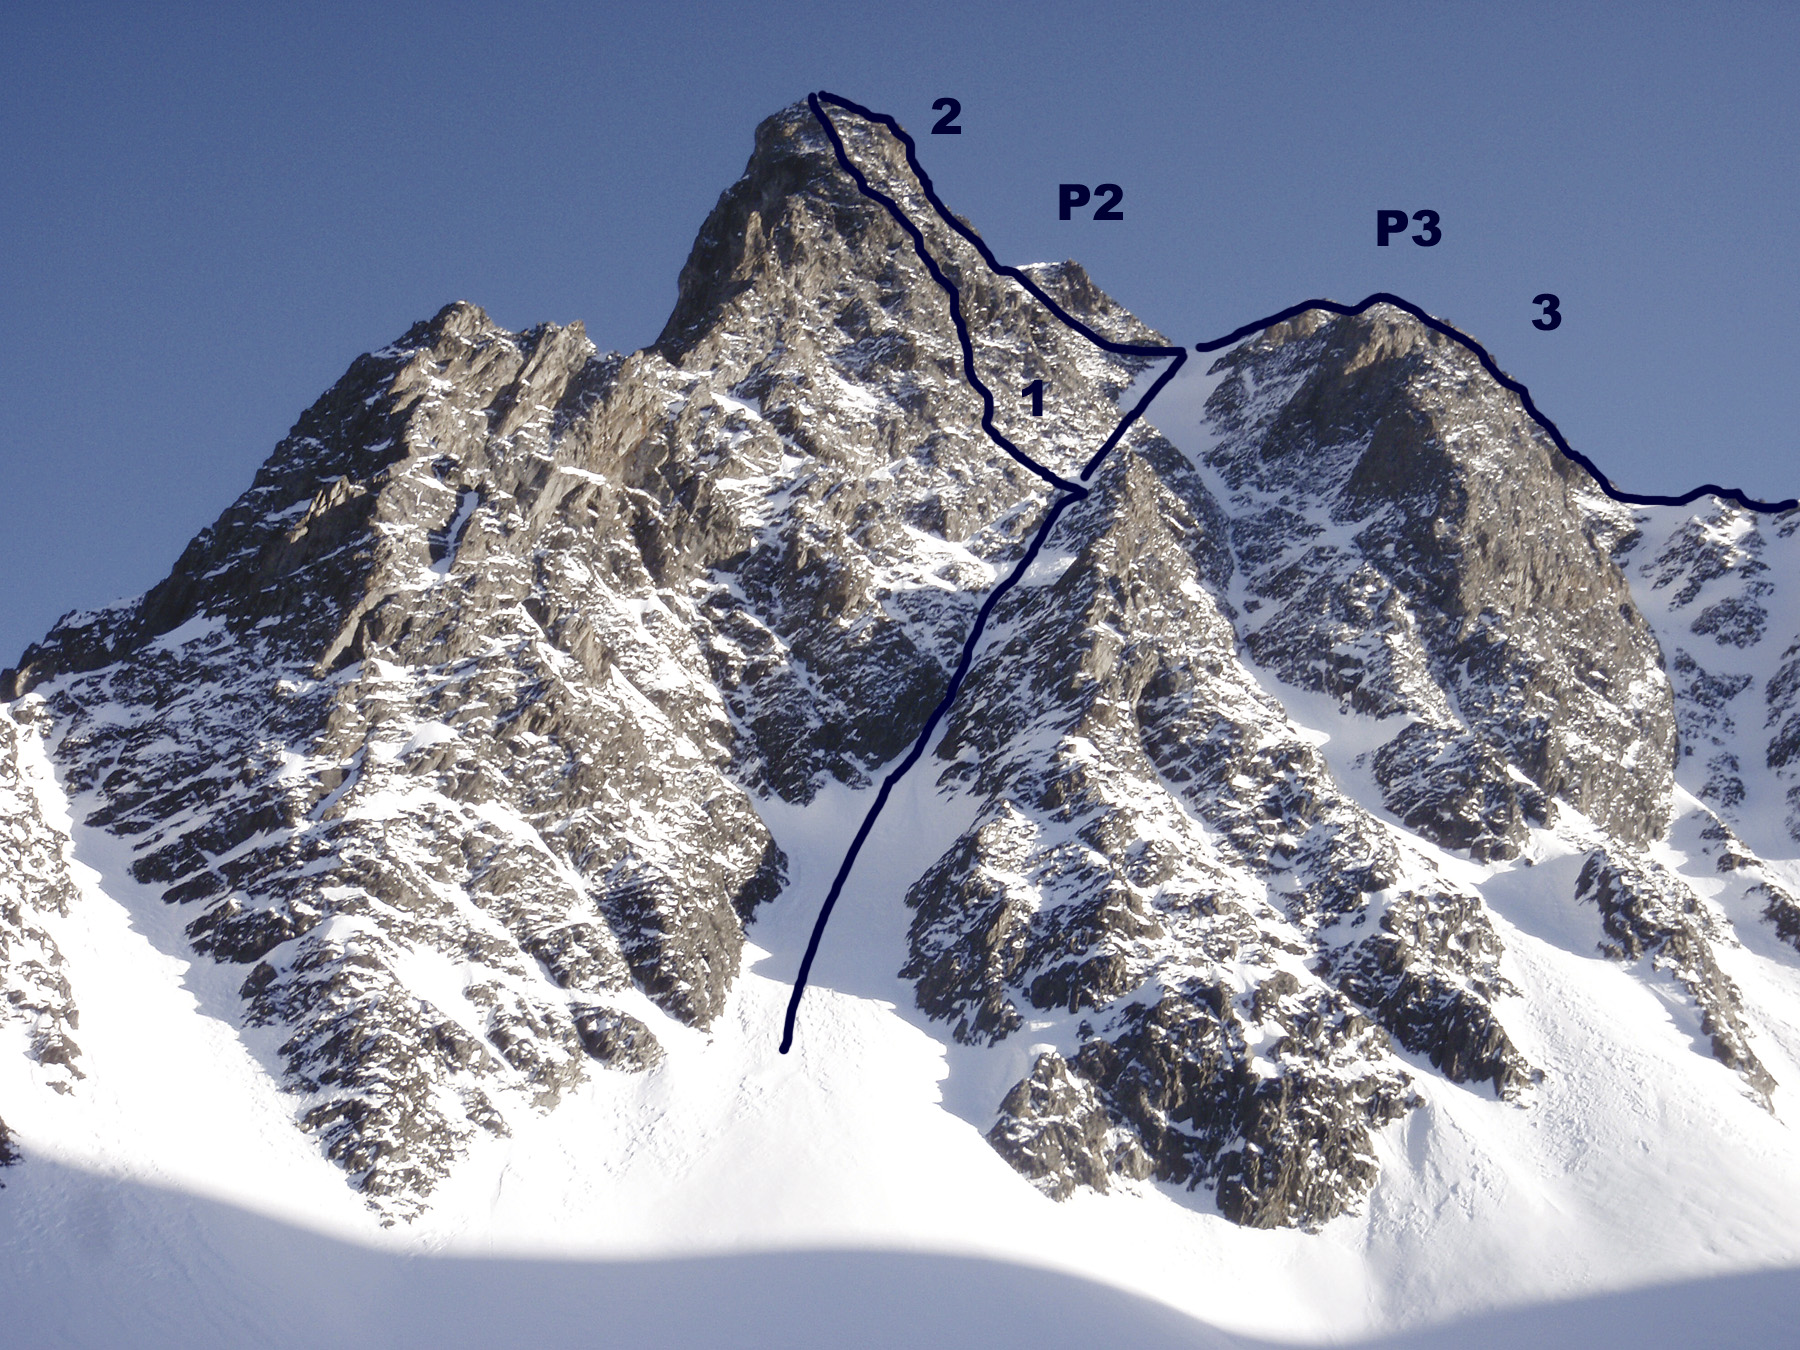 A foreshortened image of Xiaqiangla's ca 400m northeast face. Peak 2 and Peak 3 on the north ridge are marked. (1) Matsushima-Sato Route and (2) upper section of their descent on north ridge. (3) north ridge attempted by Kato and Yoshimura over Peak 3.